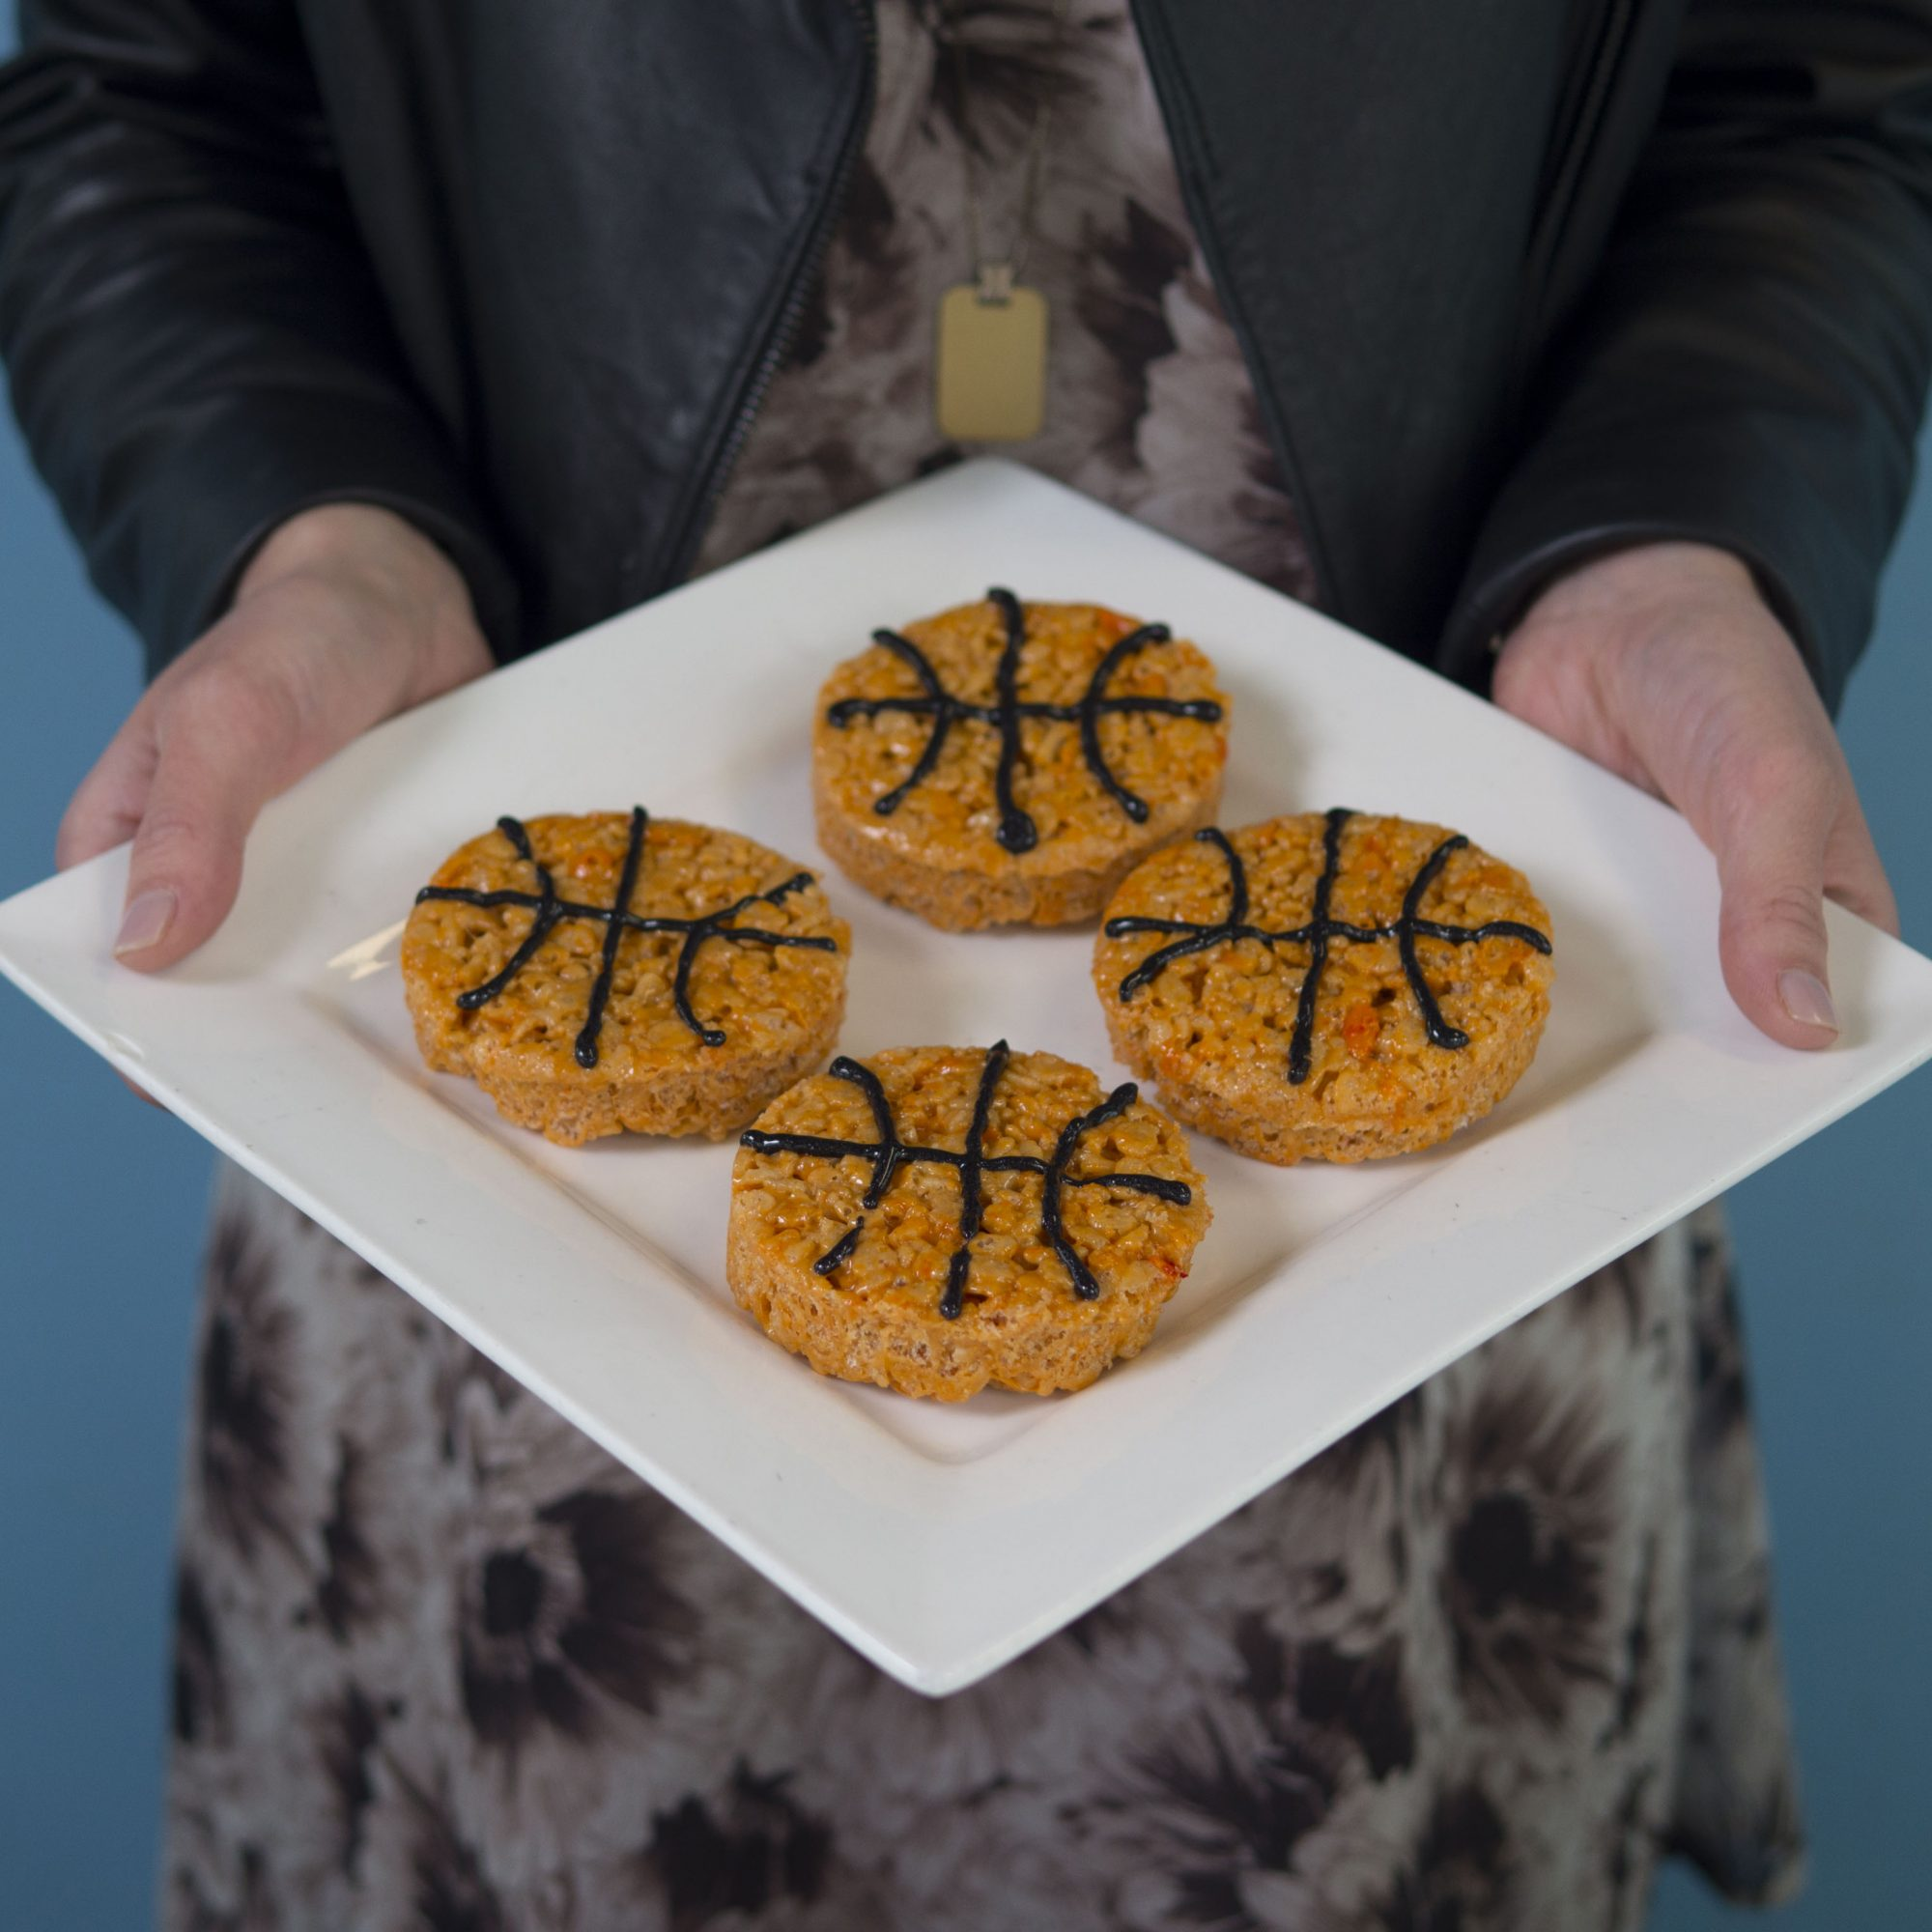 March Madness Basketball Rice Krispies Treats